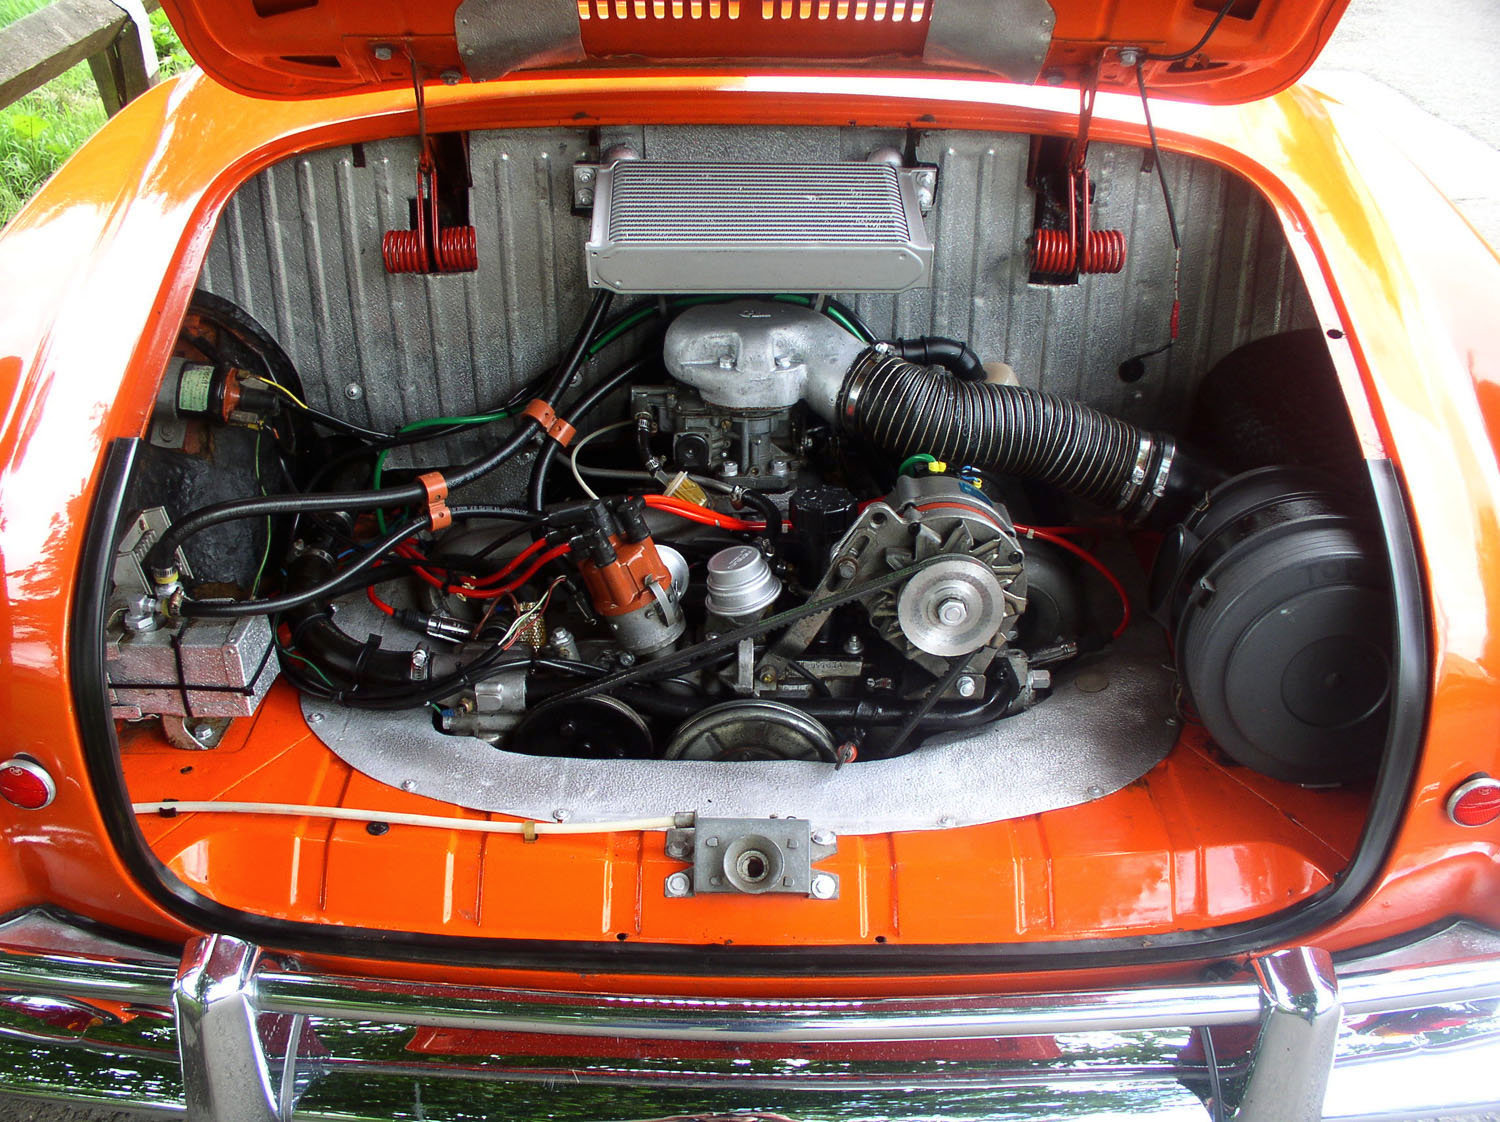 1967 Volkswagen Type 14 Karmann Ghia Coupe - Original RHD For Sale (picture 4 of 6)